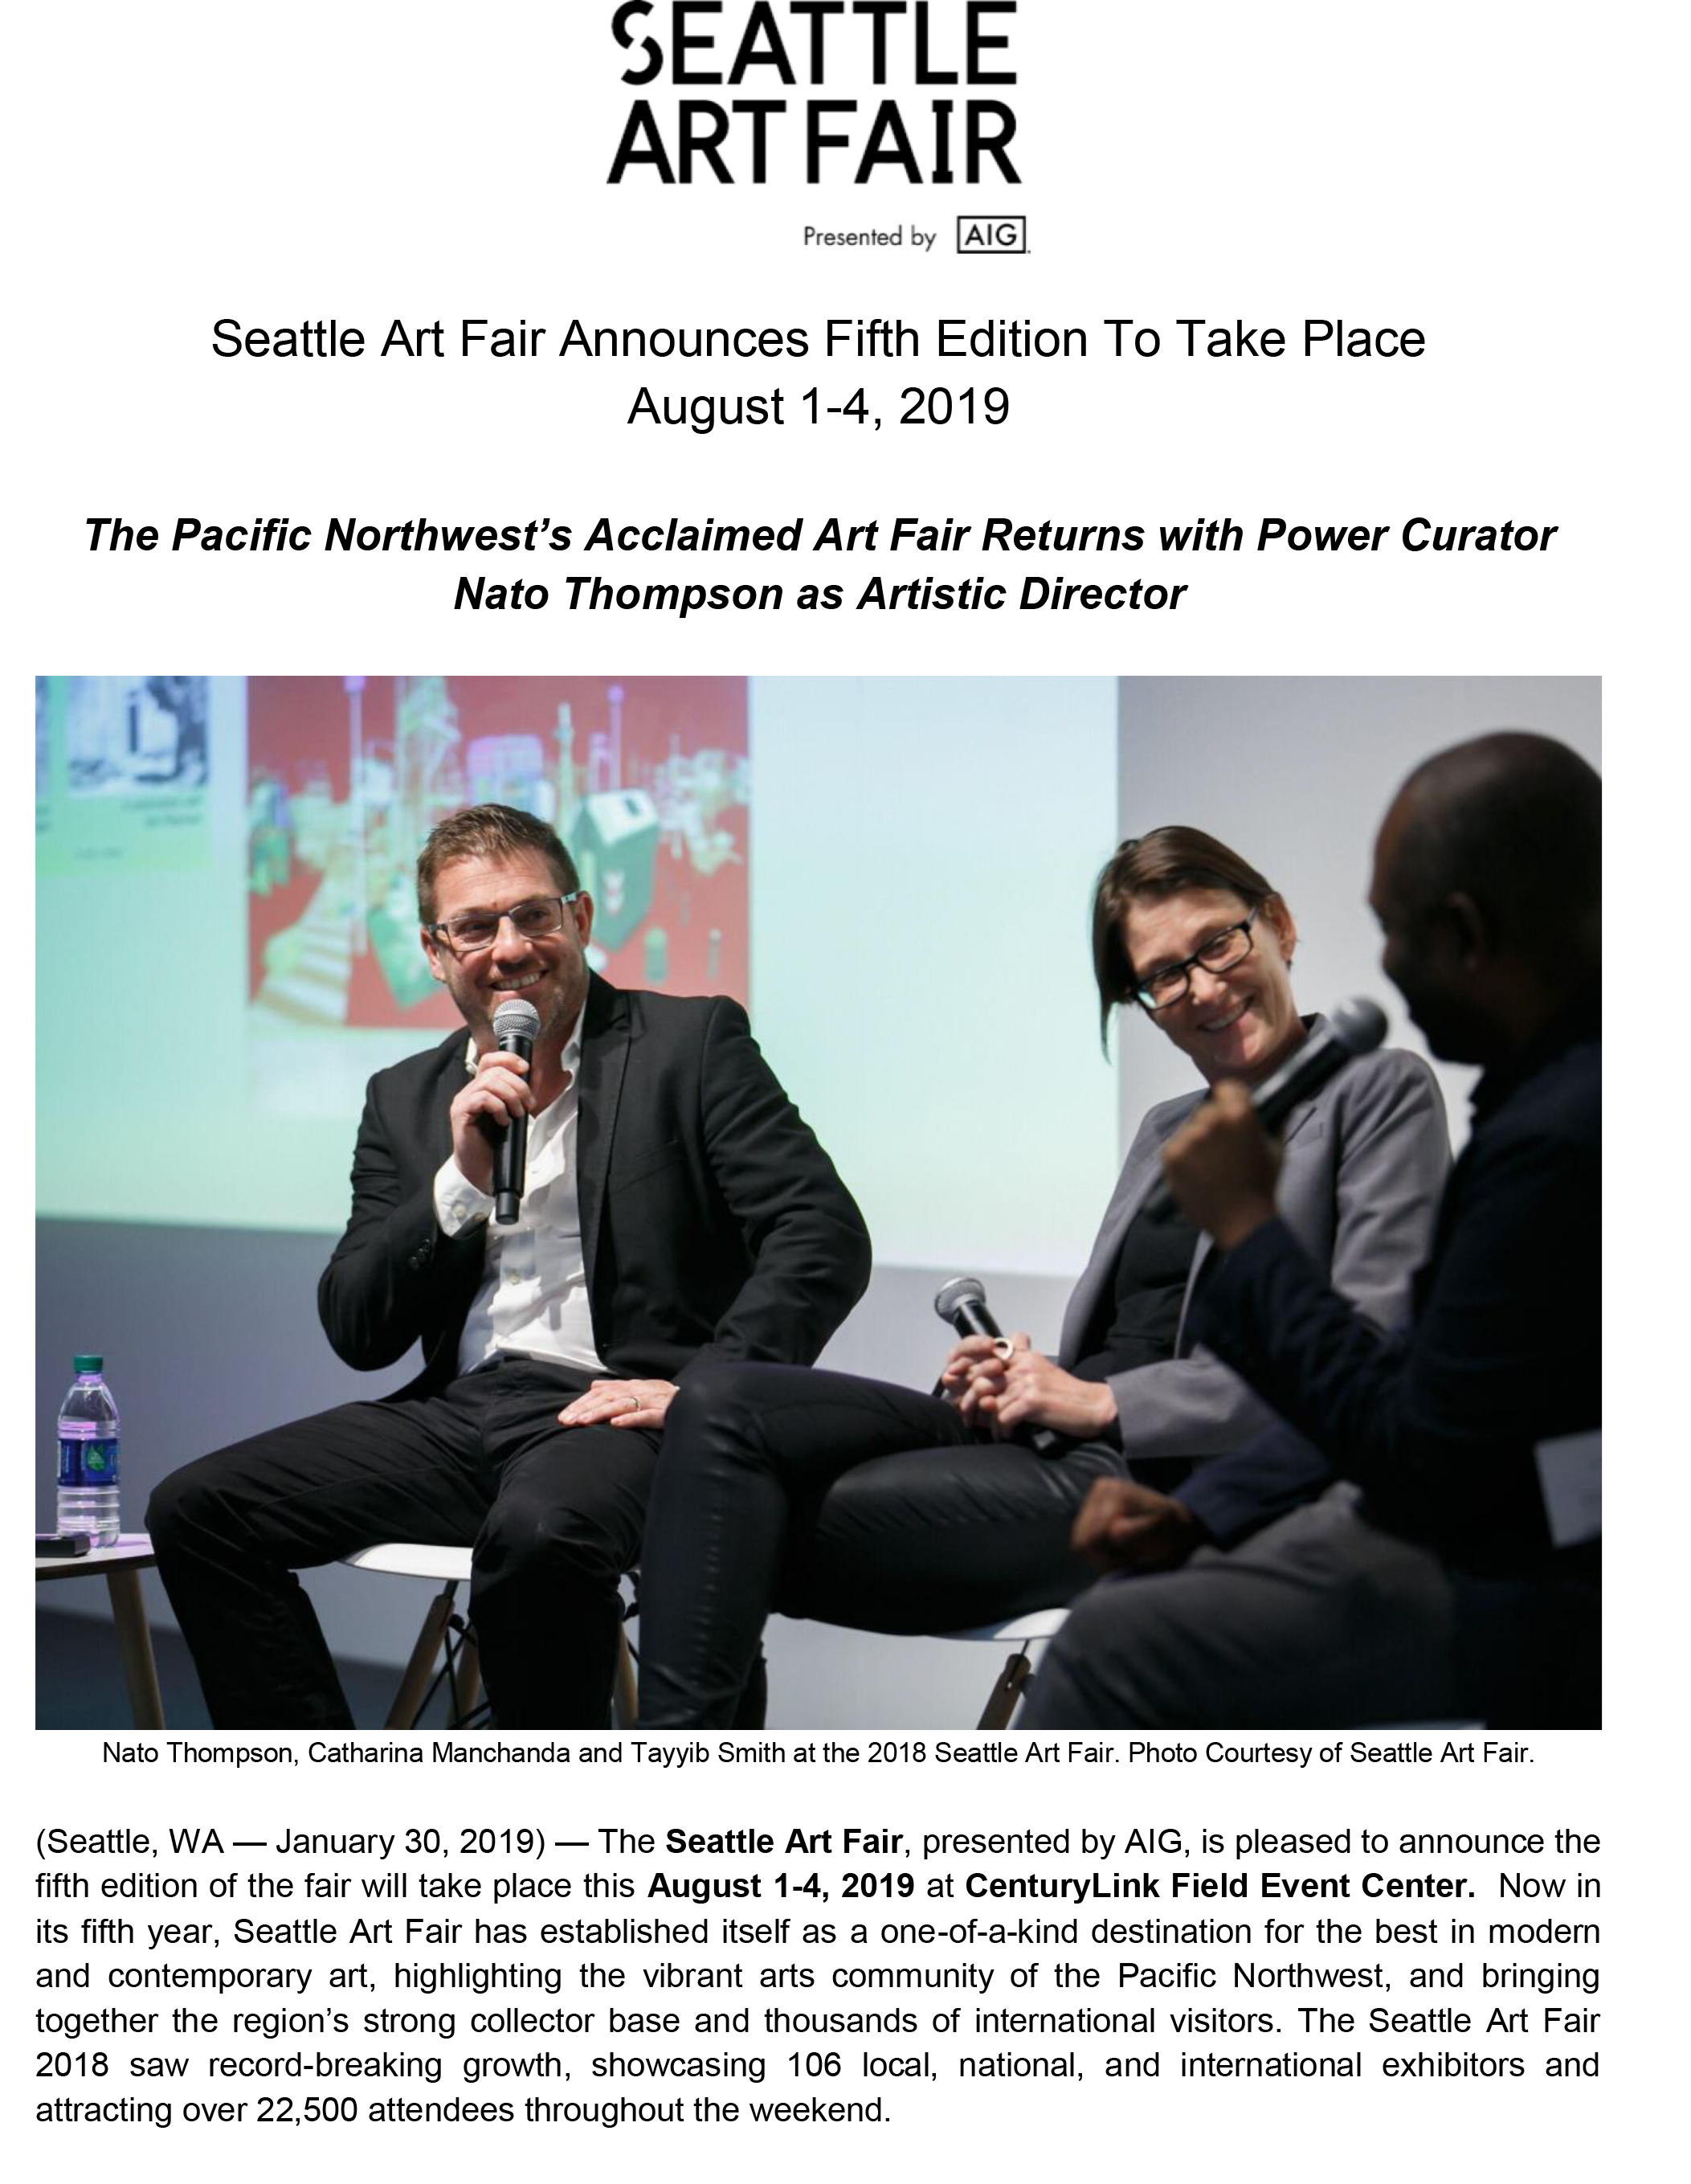 Seattle-Art-Fair-2019-Nato-Thompson-Announcement-1.jpg